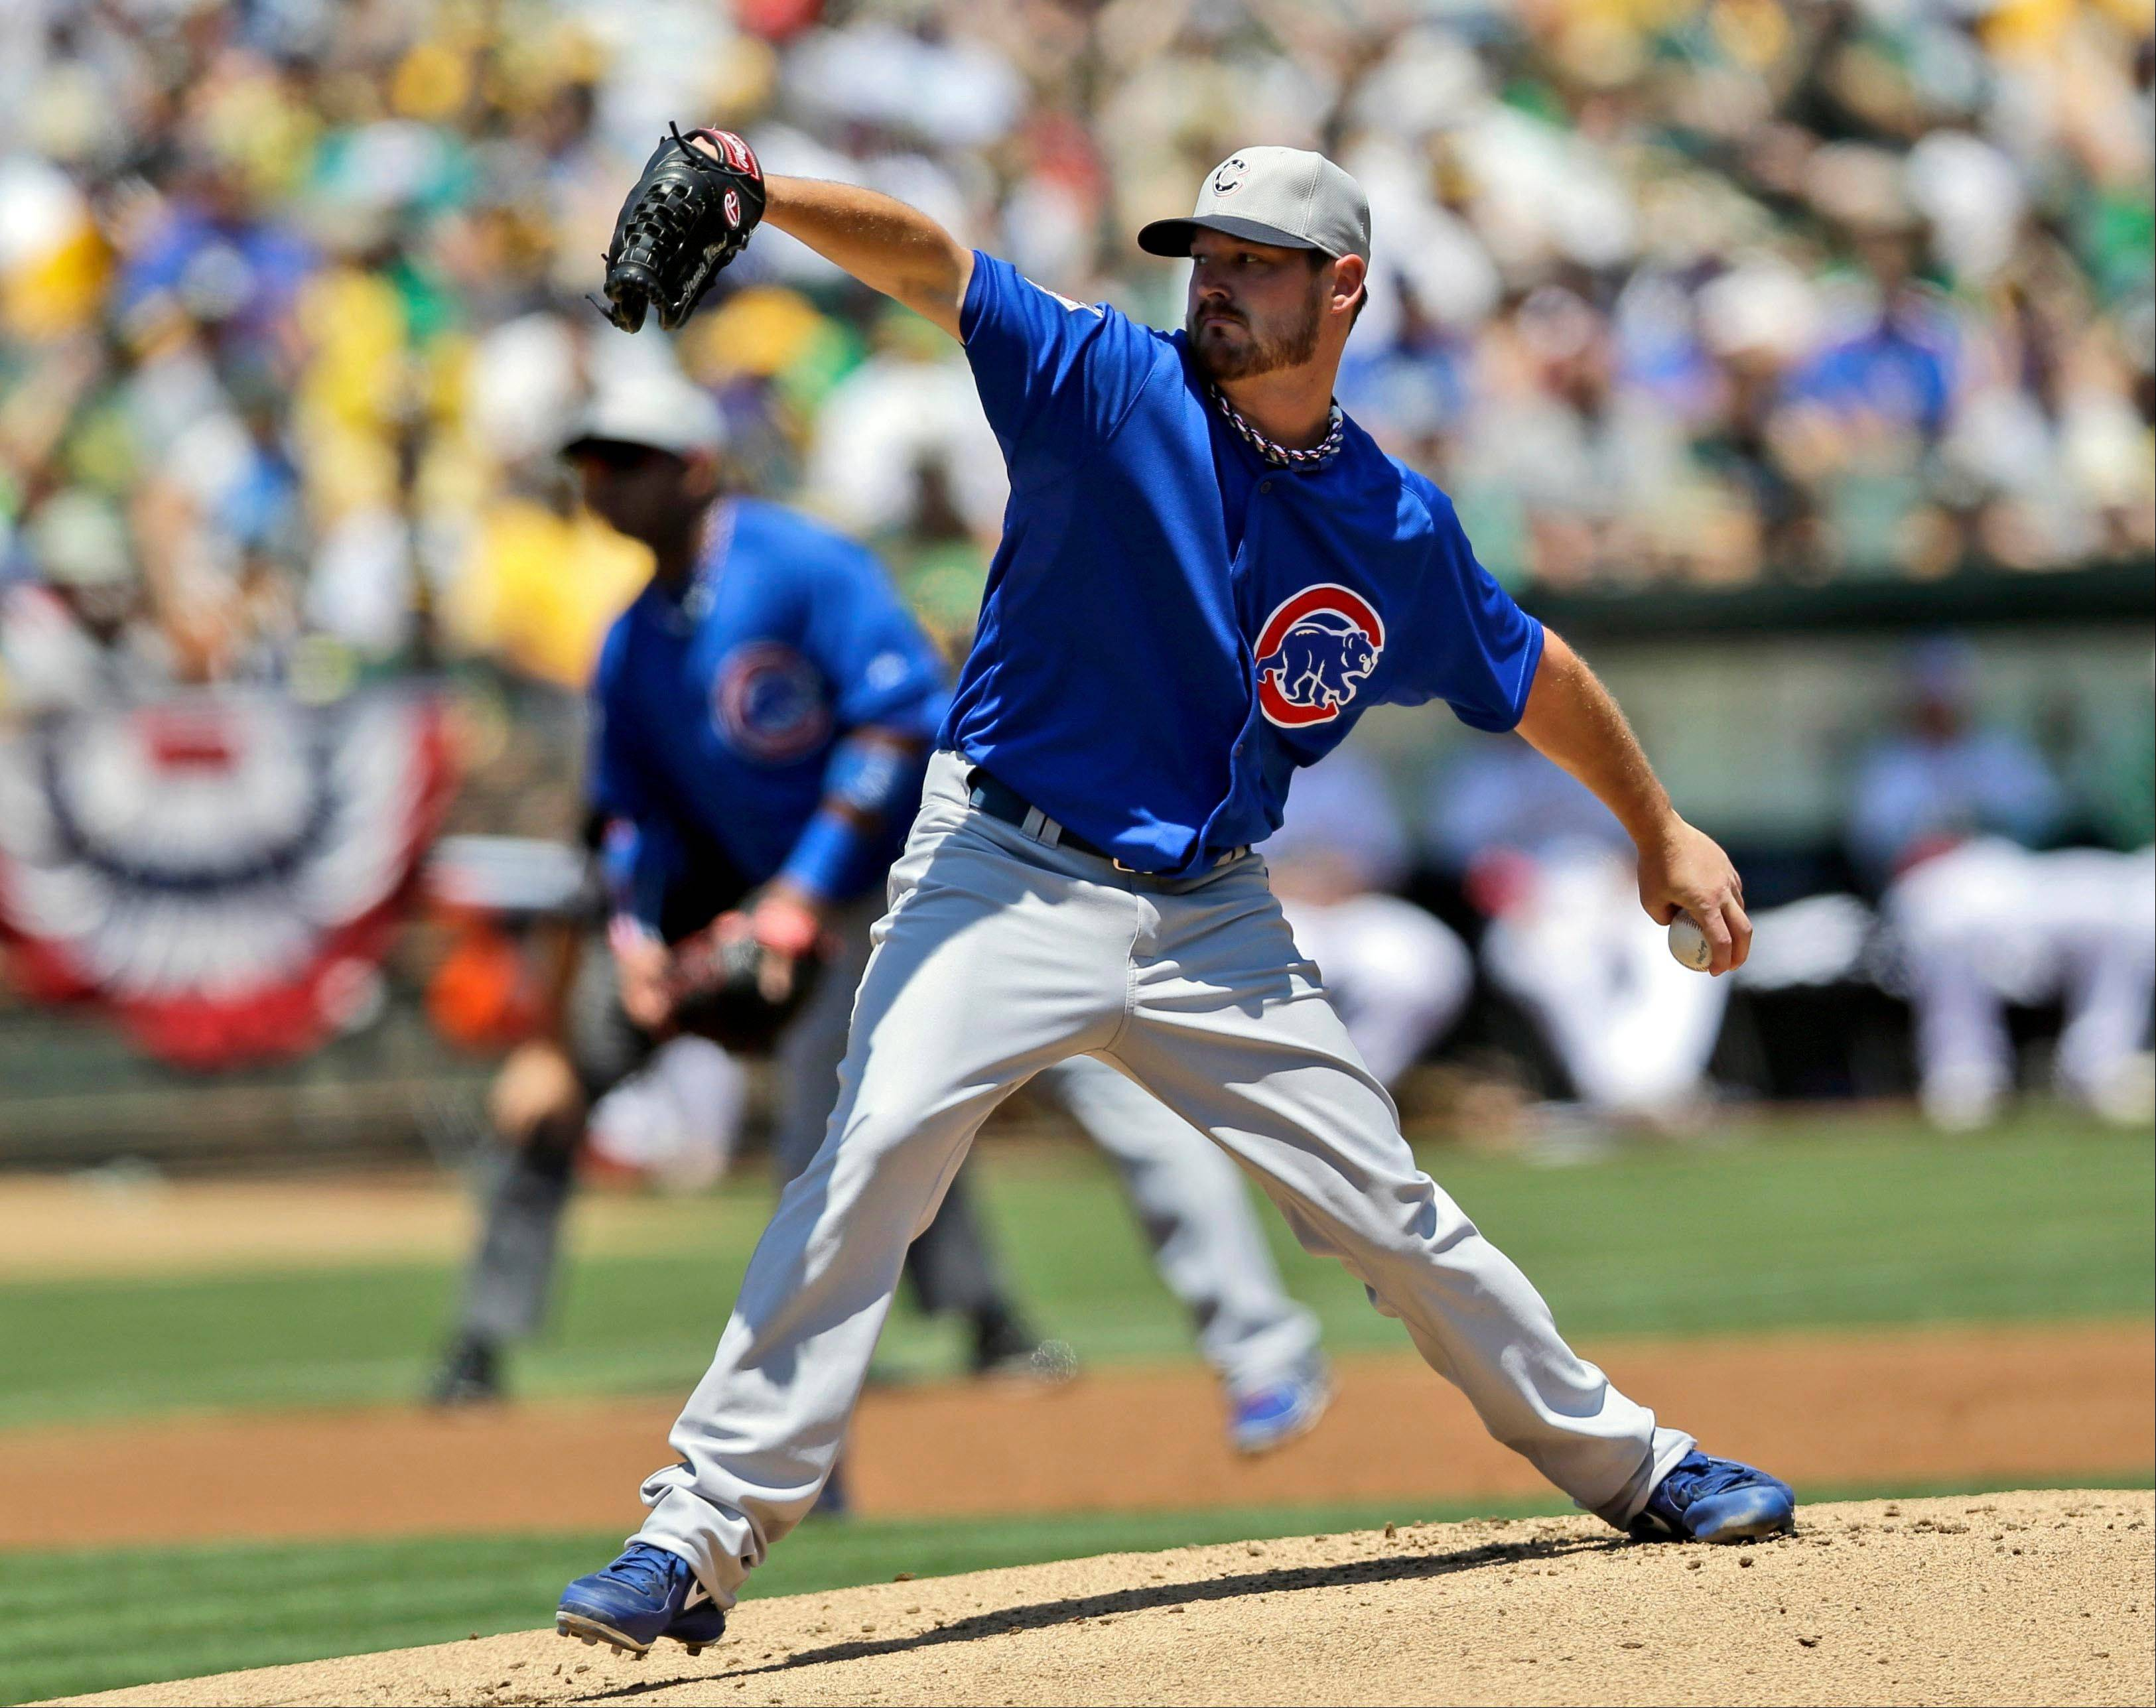 Cubs starting pitcher Travis Wood has proved this year that being an all-star pitcher isn't just about wins and losses.